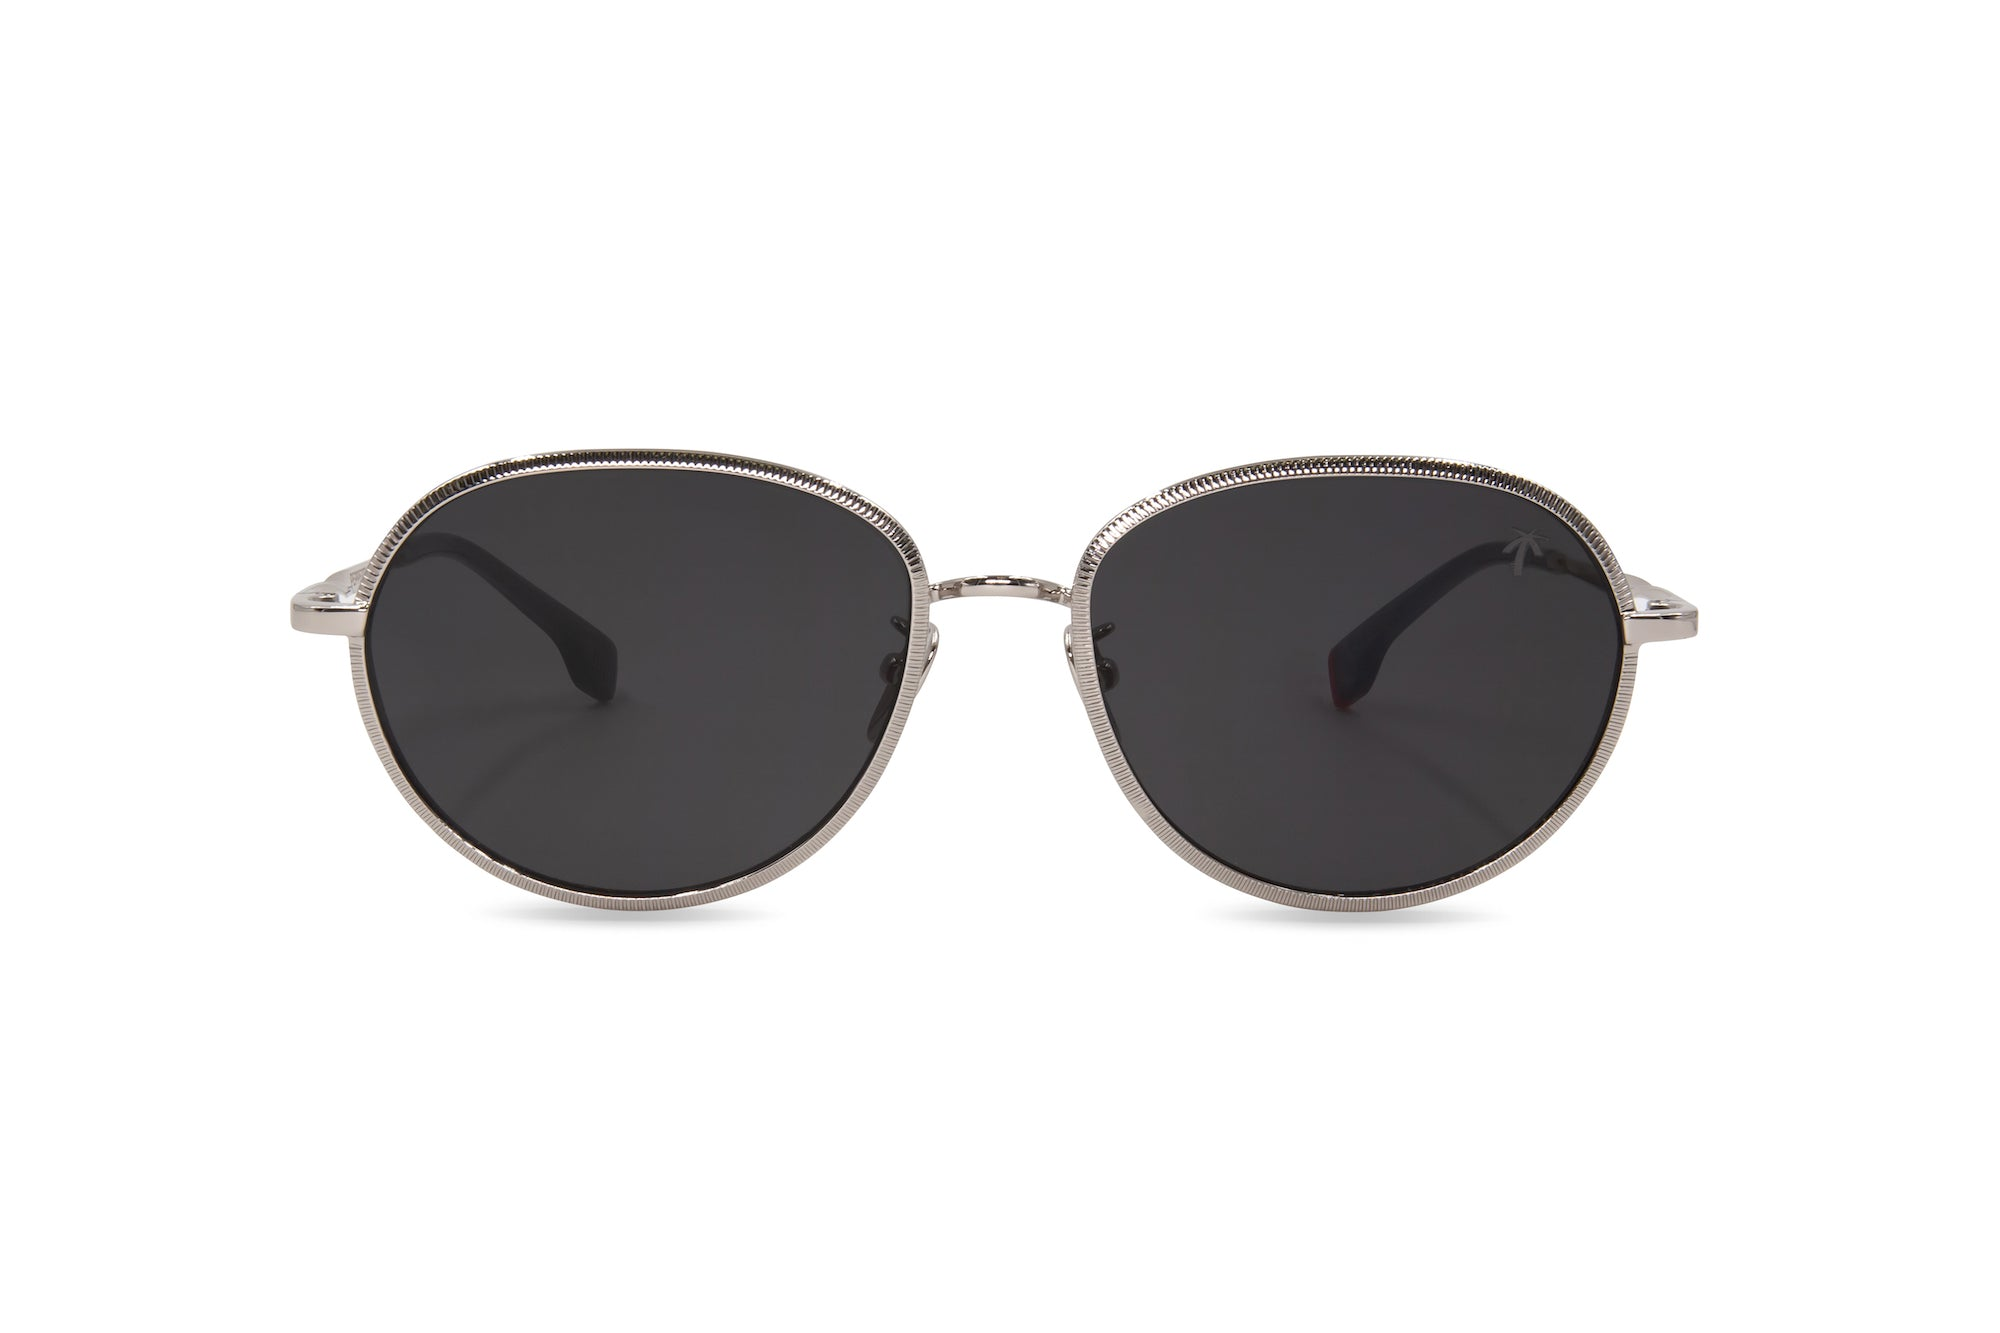 Loyola in Black (Special Edition) - Peppertint - Designer sunglasses